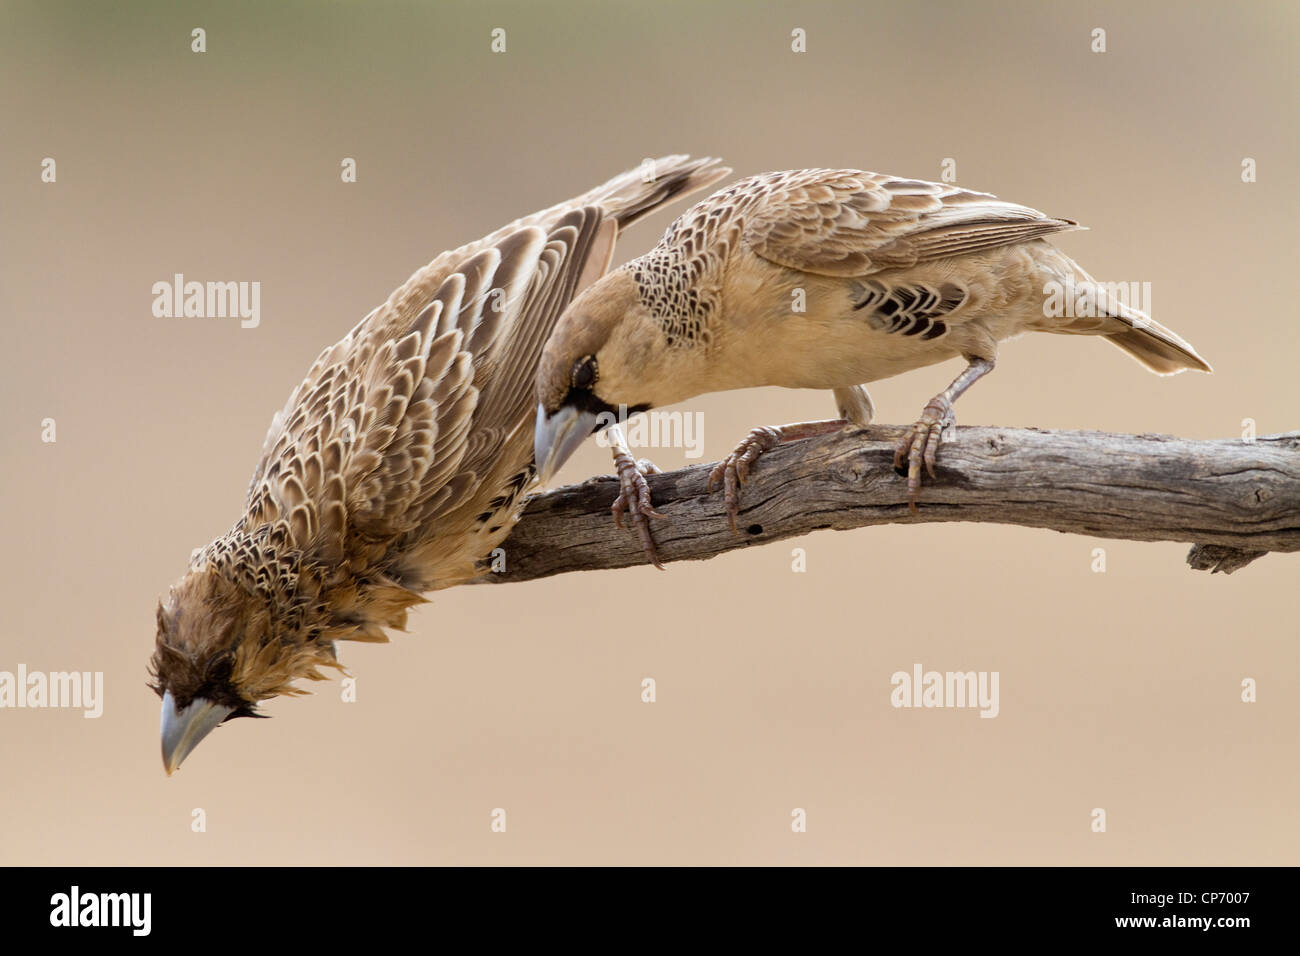 Two sociable weaver birds with one peering curiously downwards - Stock Image